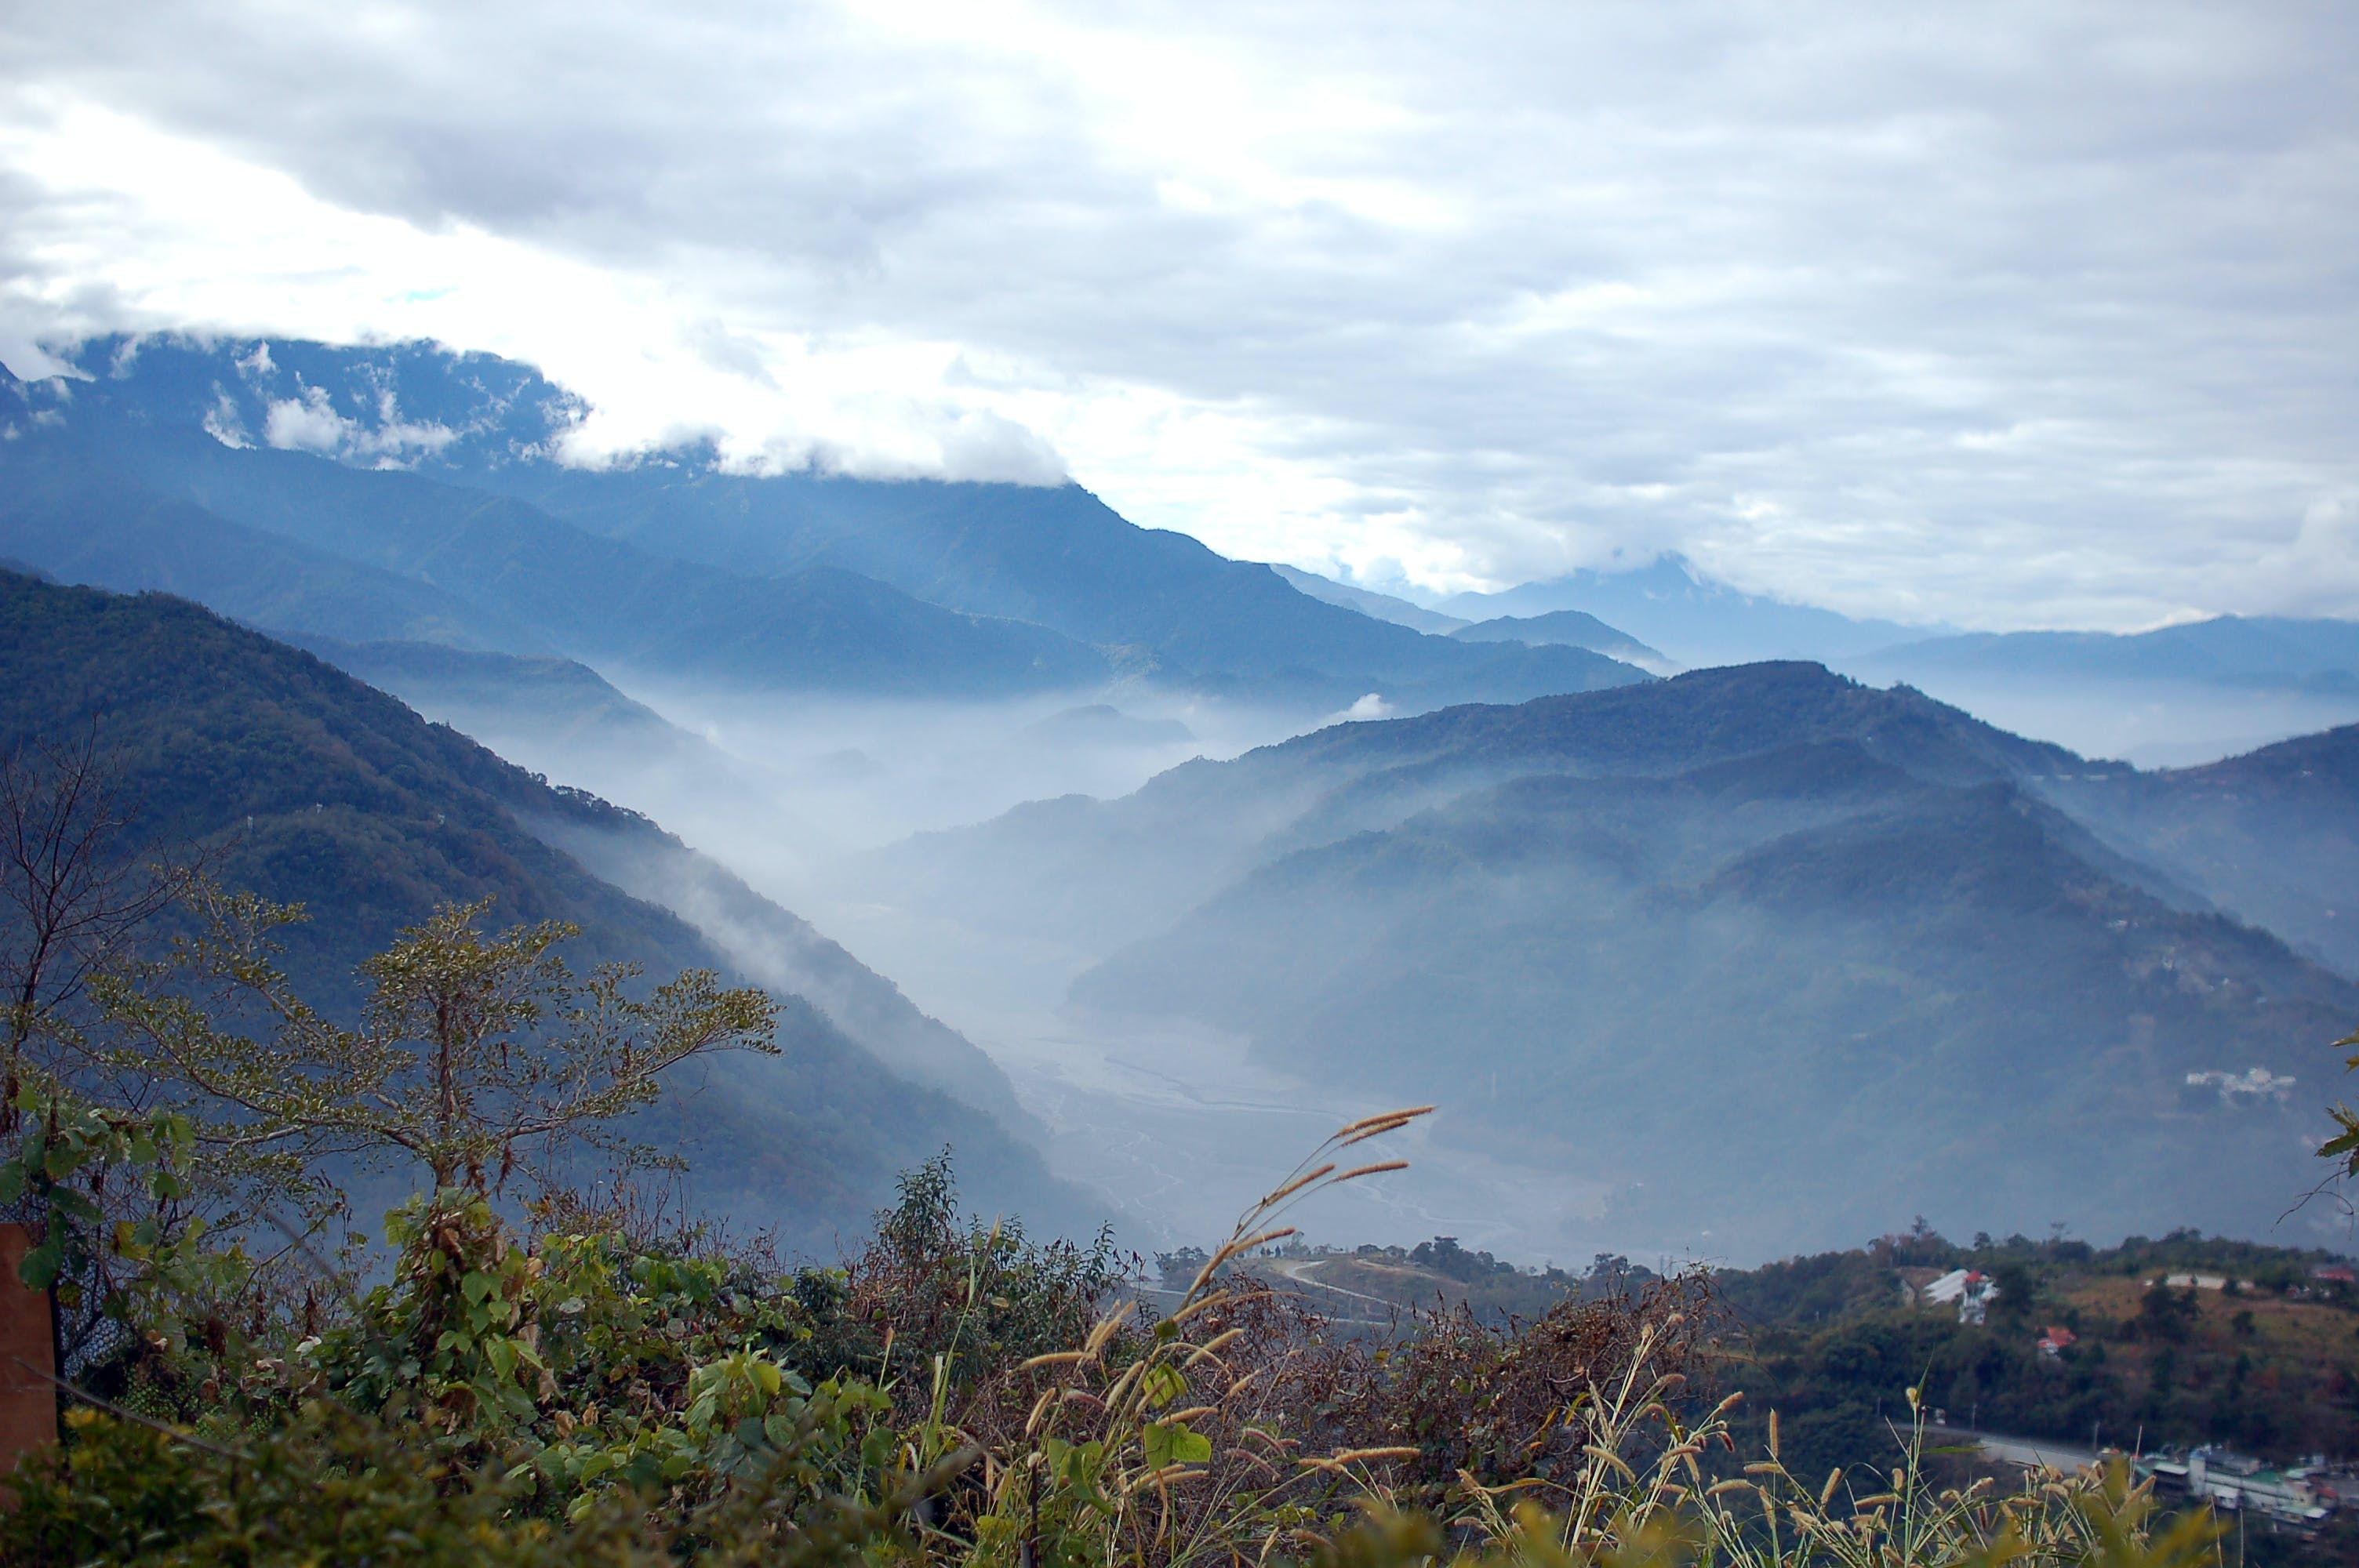 Photography of Mountain Under White Clouds during Daytije